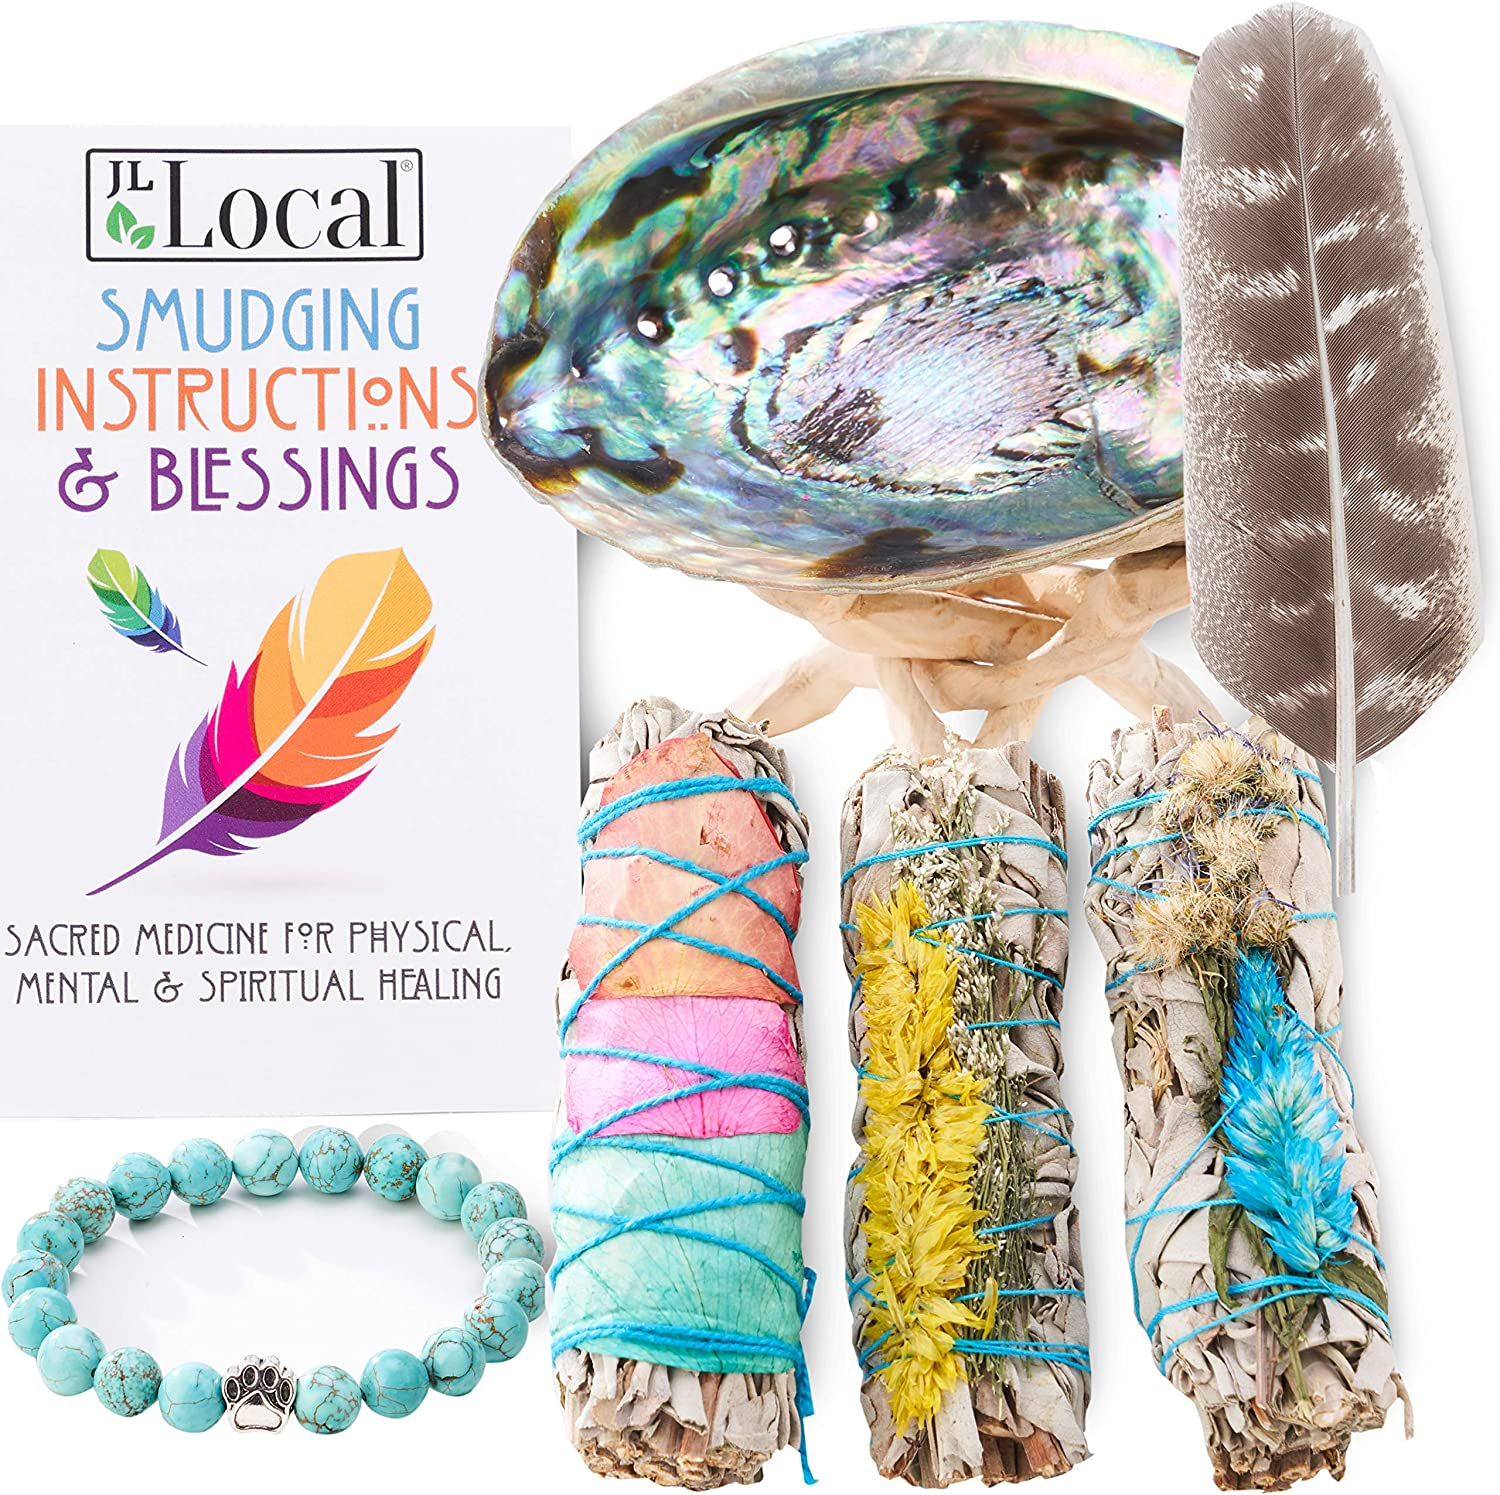 3 White Sage Fire Flowers Smudging Kit   Smudge Kit with Abalone Shell, Stand, Instructions, Blessings & Turquoise Bracelet